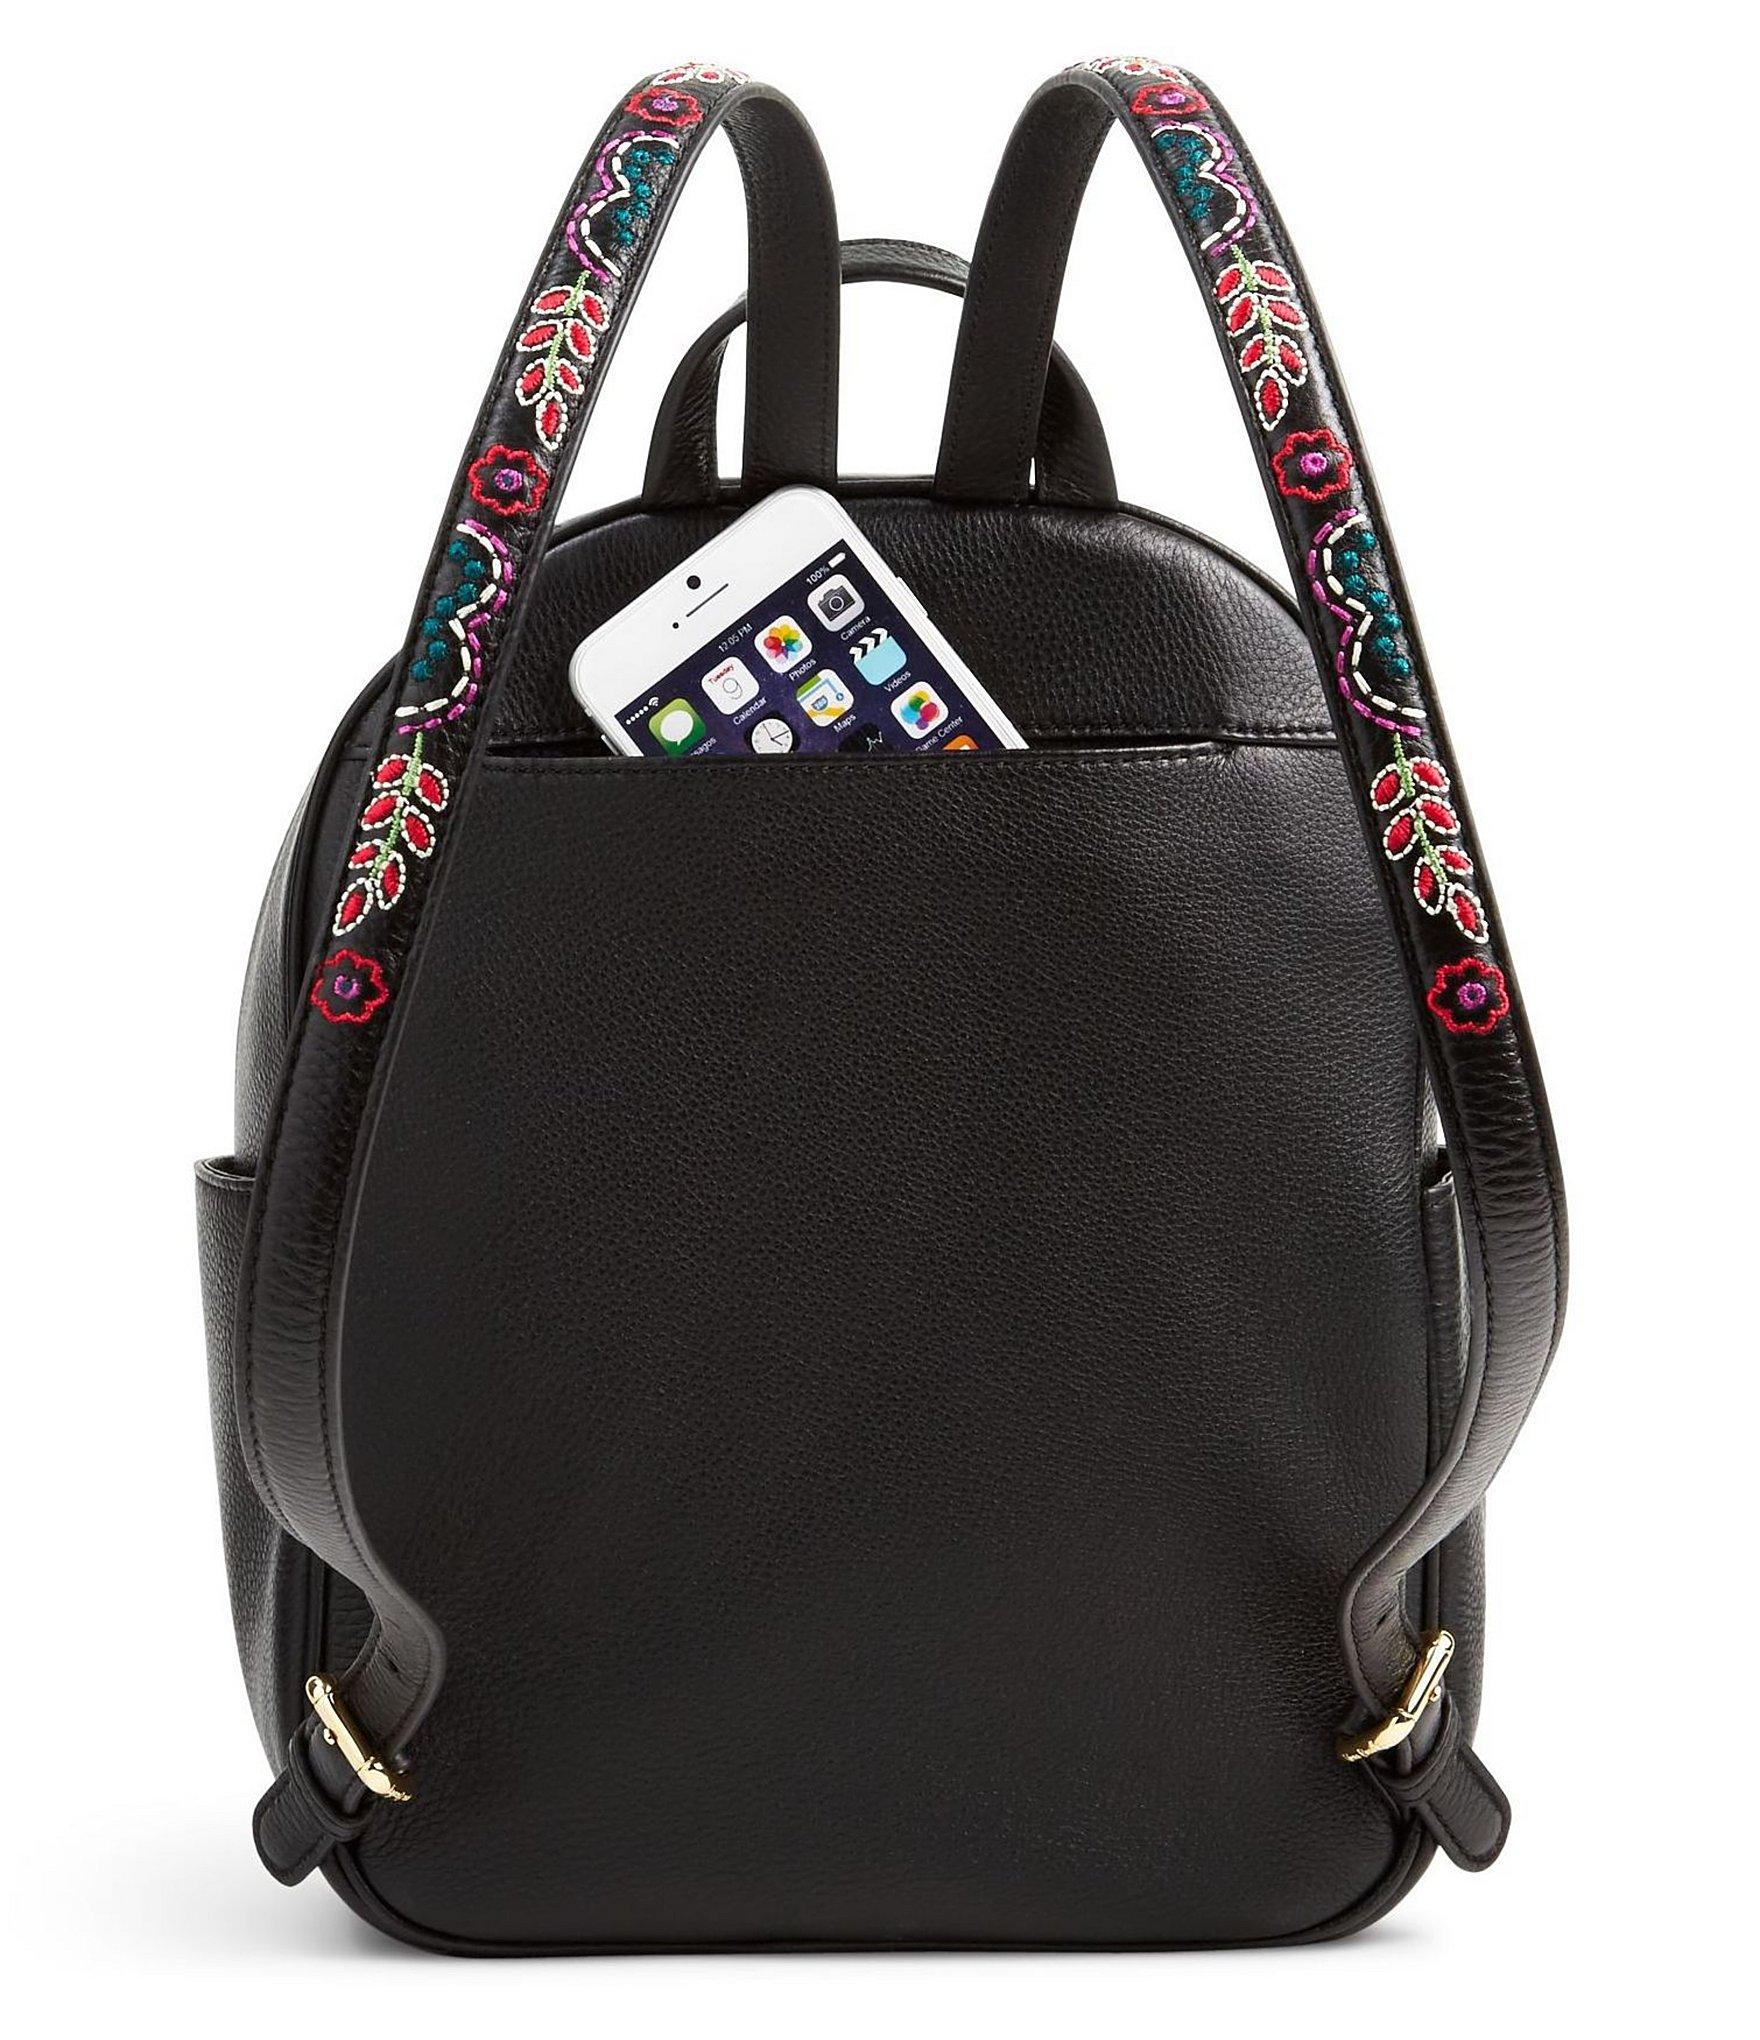 Vera Bradley Leighton Floral Embroidered Backpack In Black